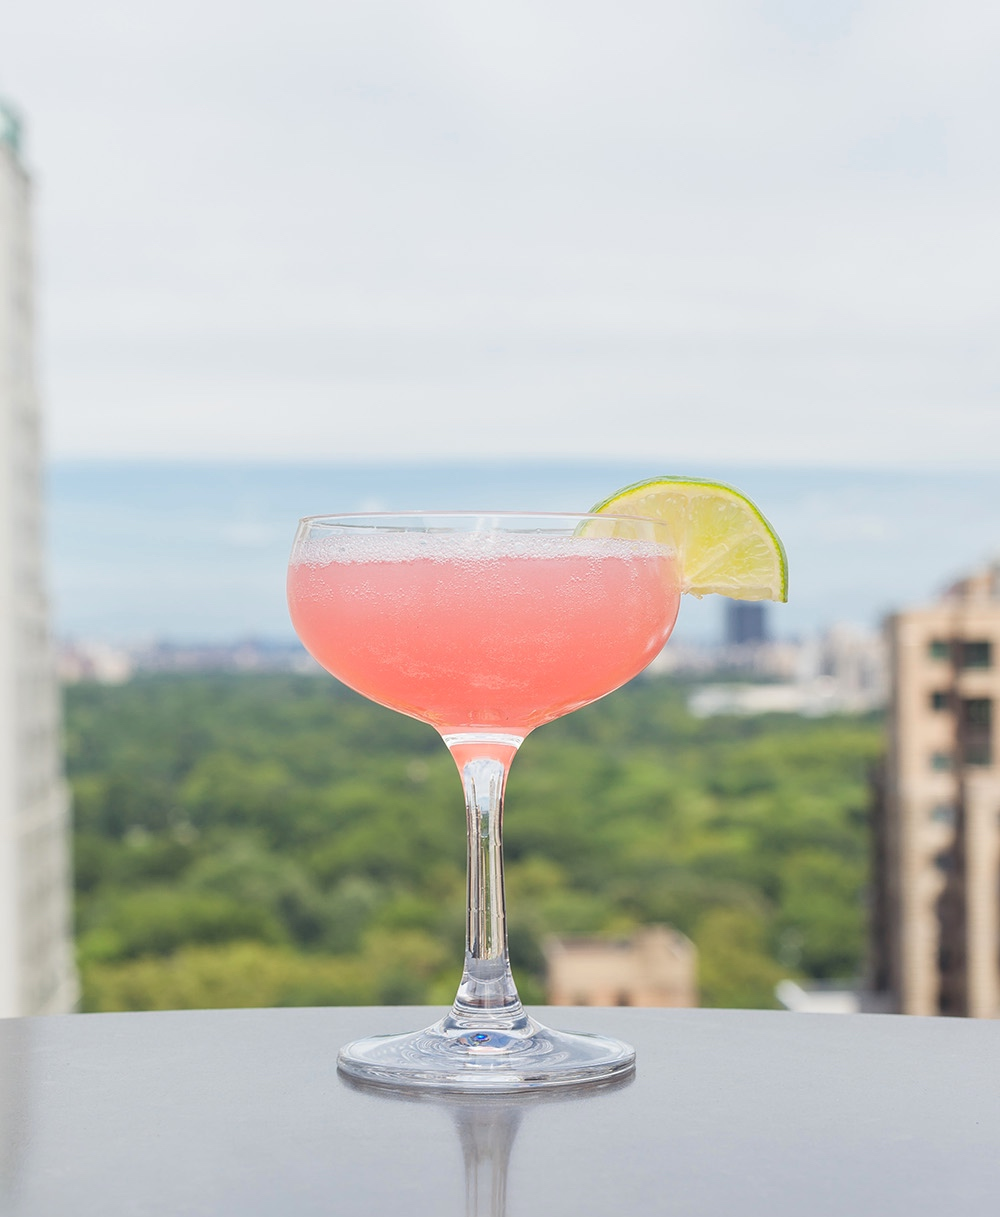 Best cosmopolitan recipe how to make a cosmopolitan for Great vodka mixed drinks